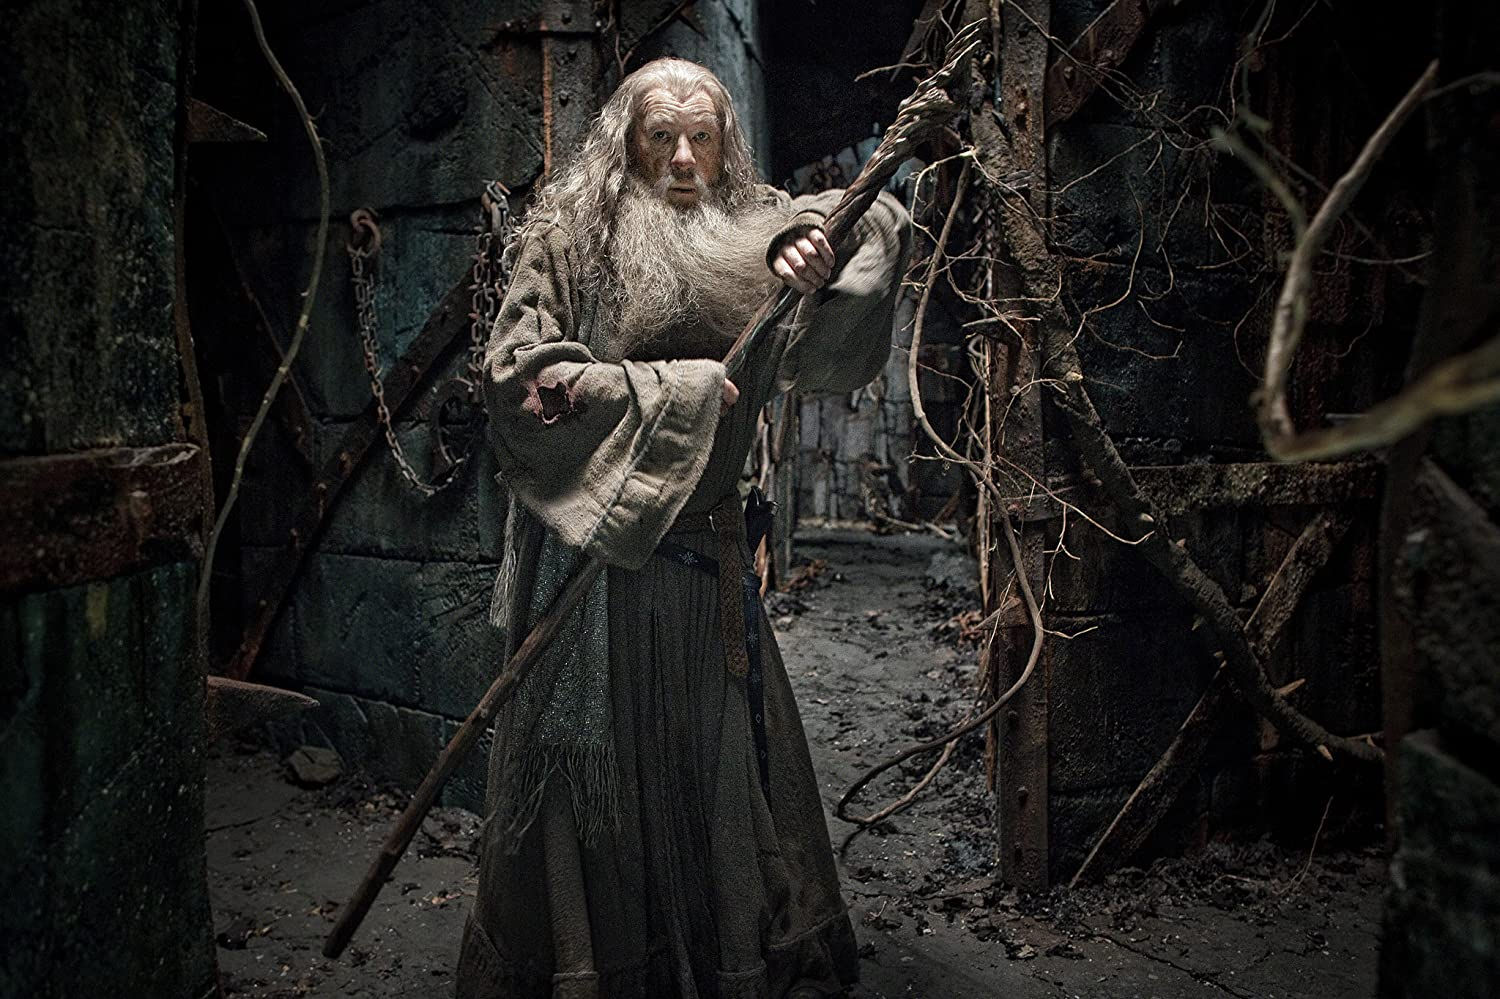 Ian McKellen in The Hobbit: The Desolation of Smaug (2013)